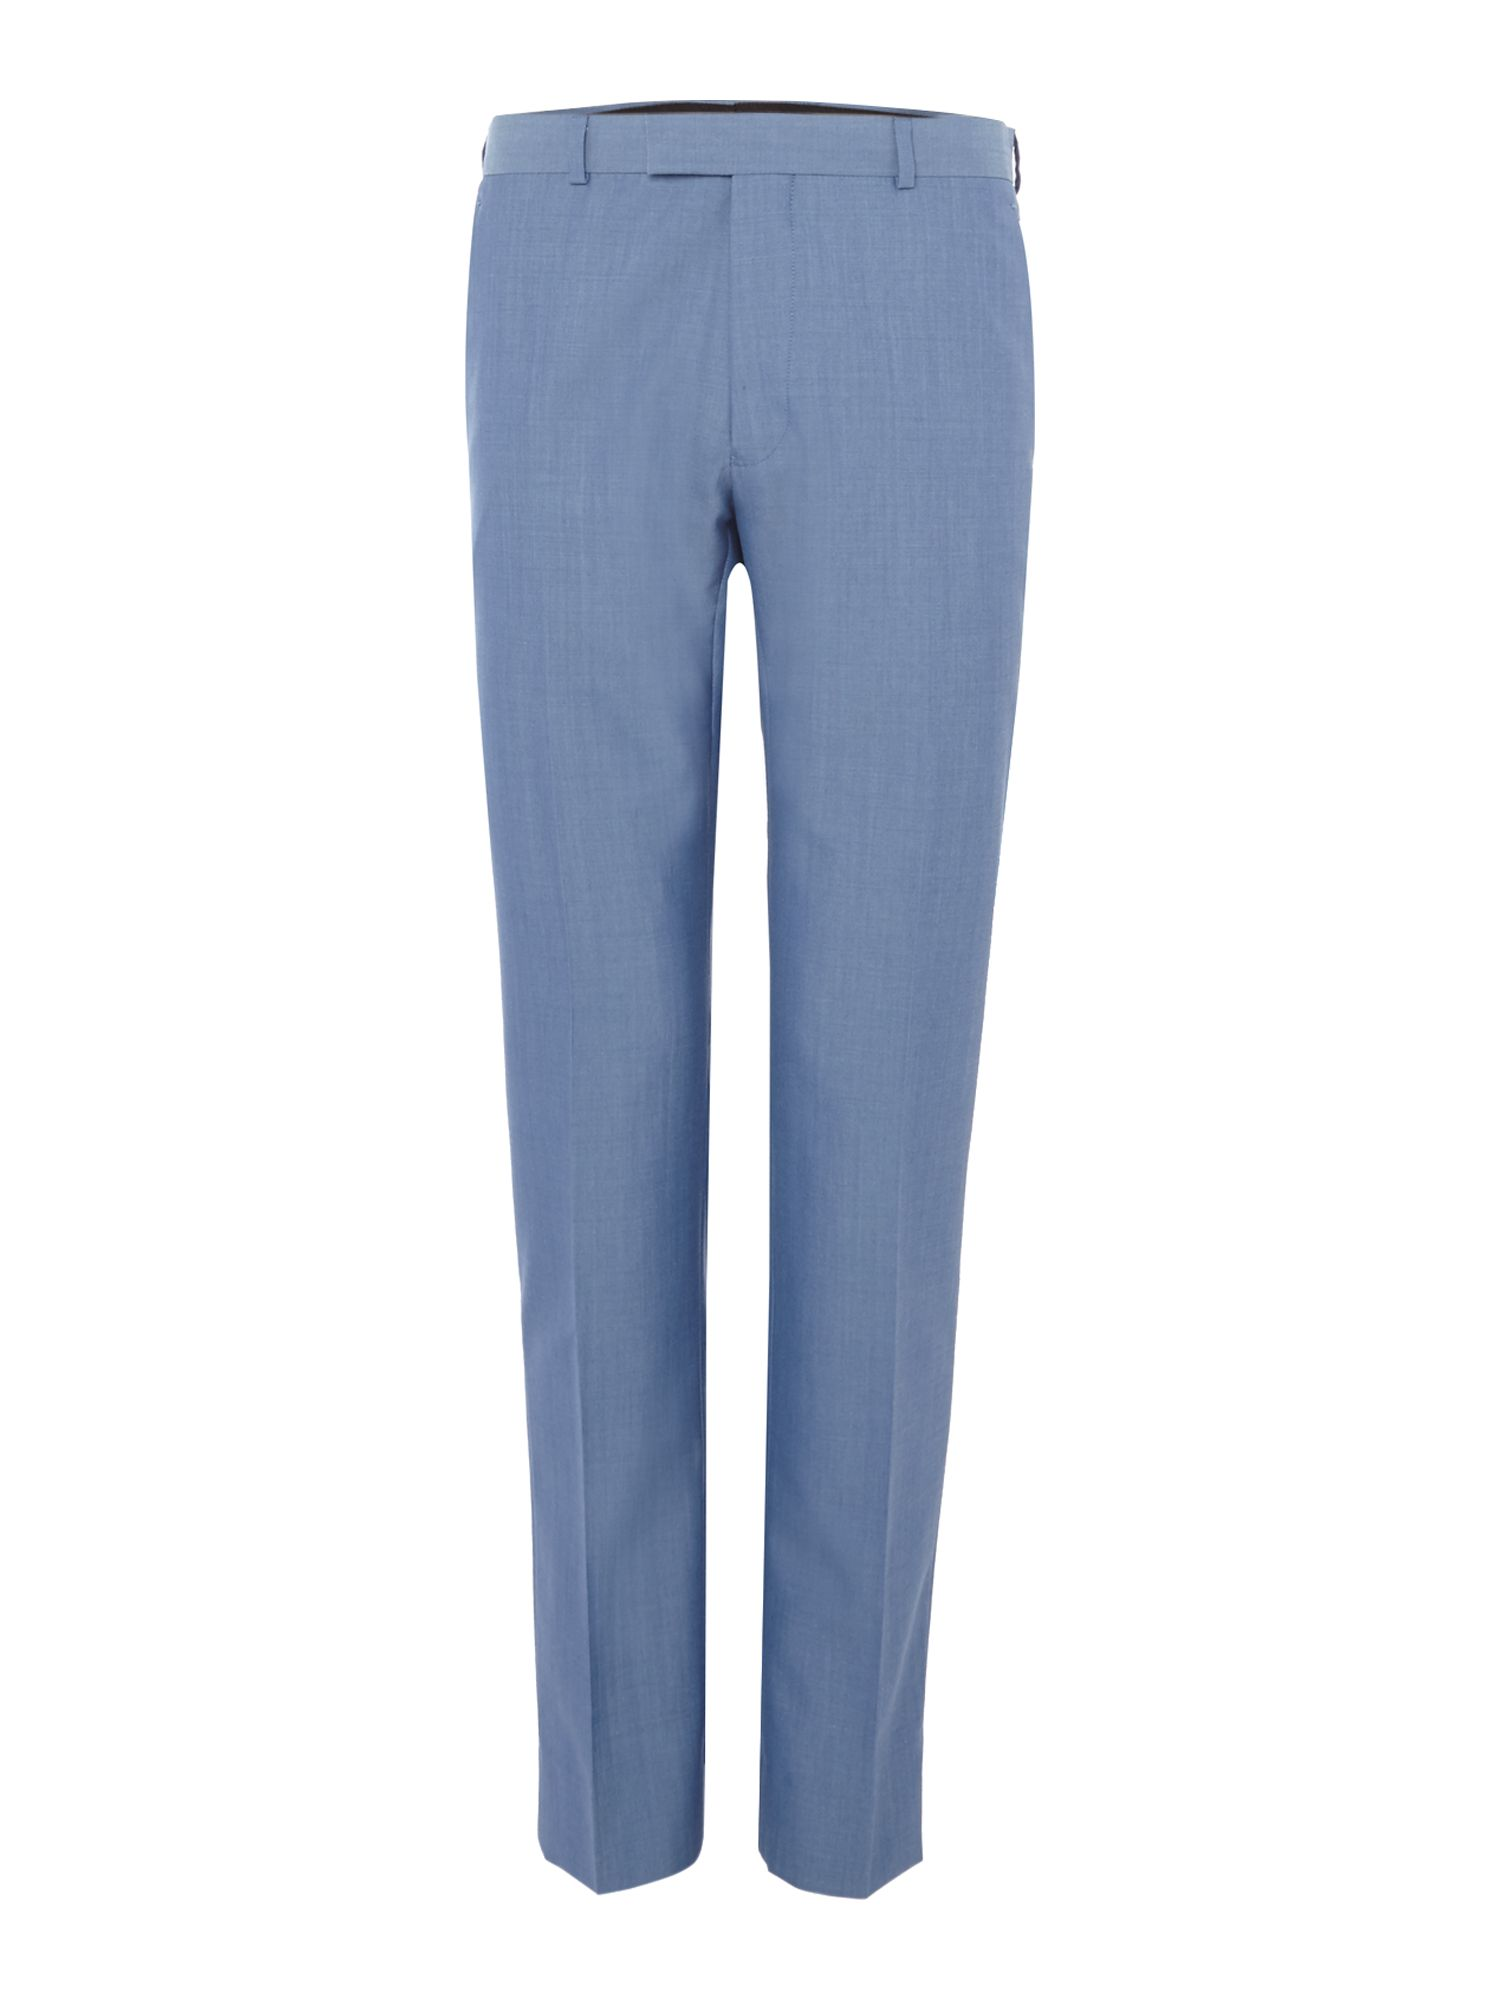 Men's Kenneth Cole Ralph Slim fit Suit Trouser, Blue